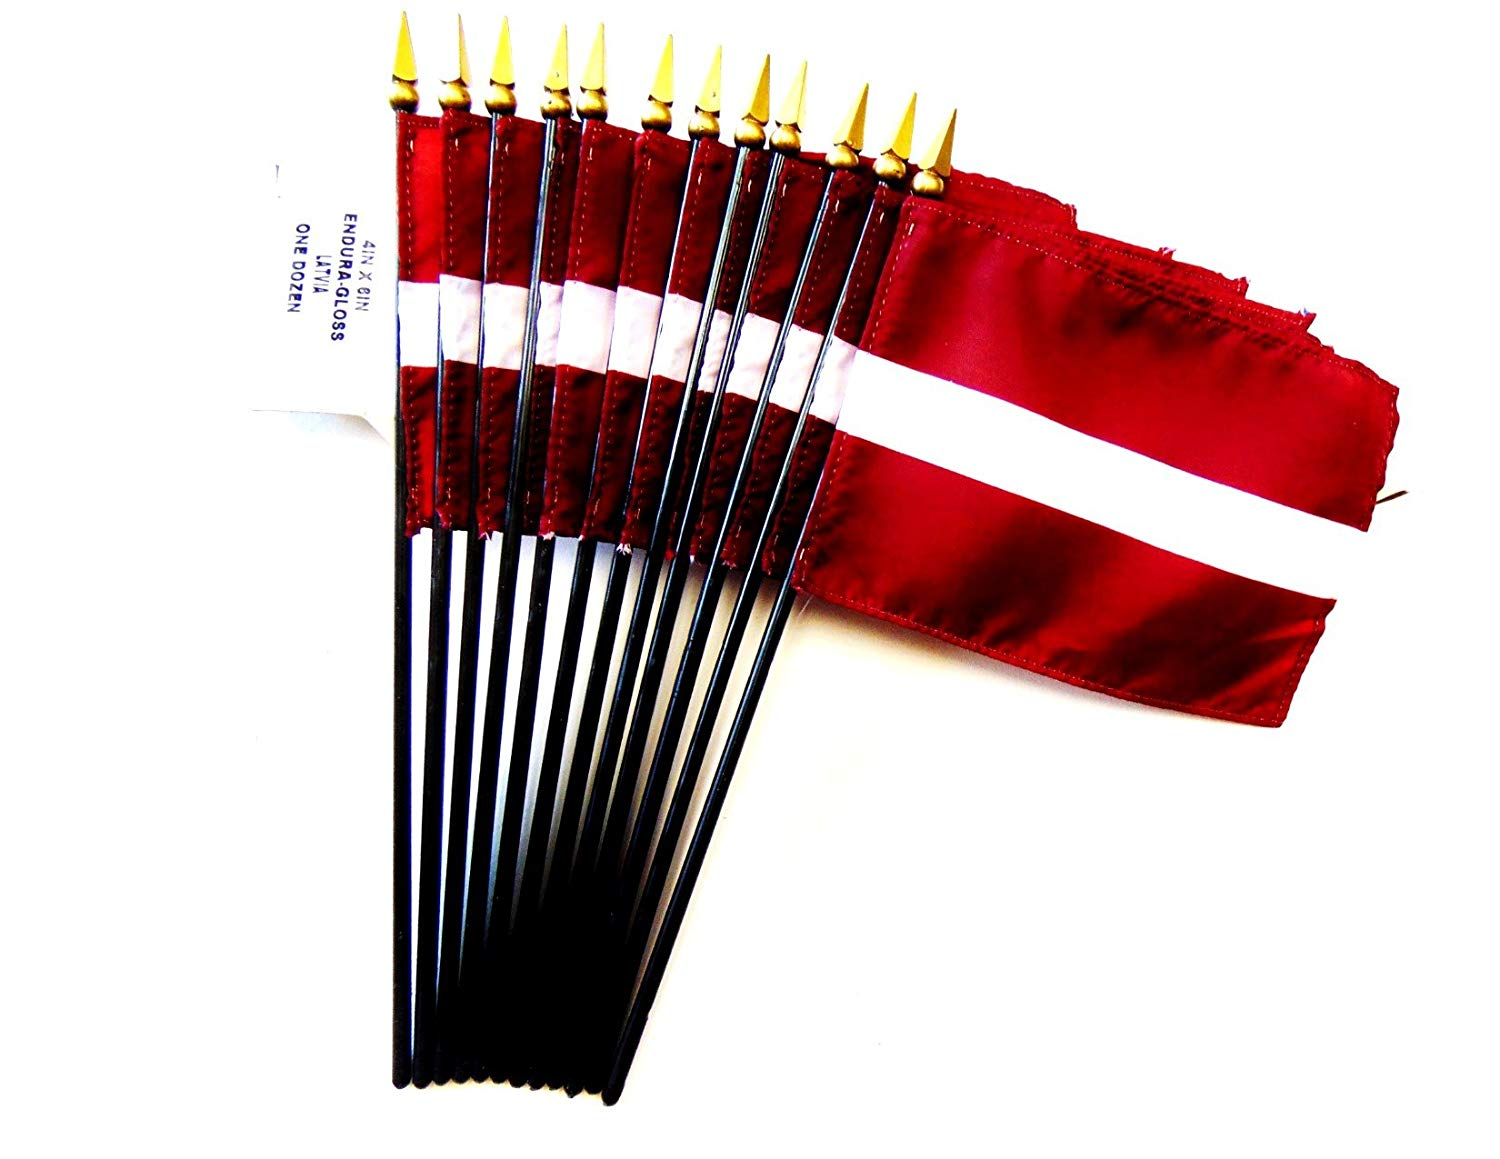 "MADE IN USA!! Box of 12 Latvia 4""x6"" Miniature Desk & Table Flags; 12 American Made Small Mini Latvian Flags in a Custom Made Cardboard Box Specifically Made for These Flags"